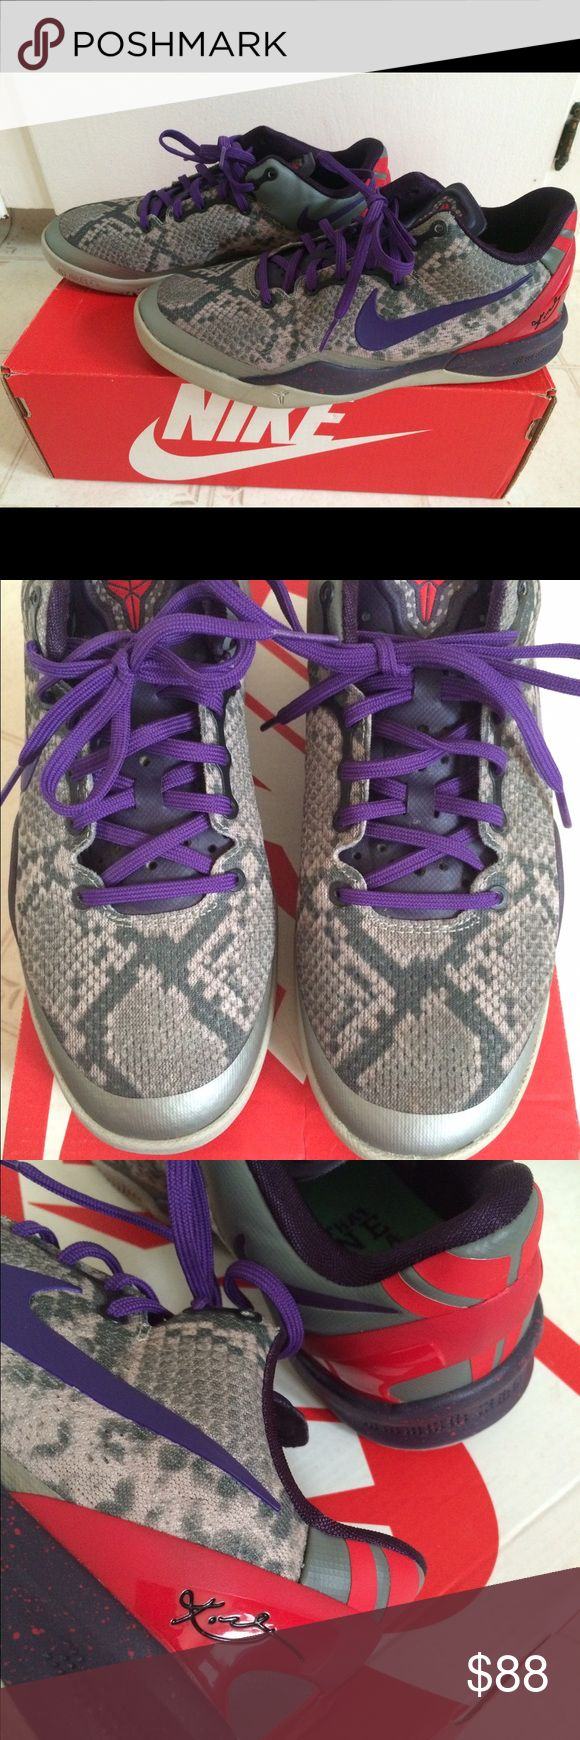 Nike Kobe's Size 5 Youth 37.5 Euro Gently worn. Limited edition Kobe's with signature. Do not have original box. Size 5Y or 37.5 euro which I believe is a 6.5 /7 in ladies. Excellent Condition. Nike Shoes Athletic Shoes